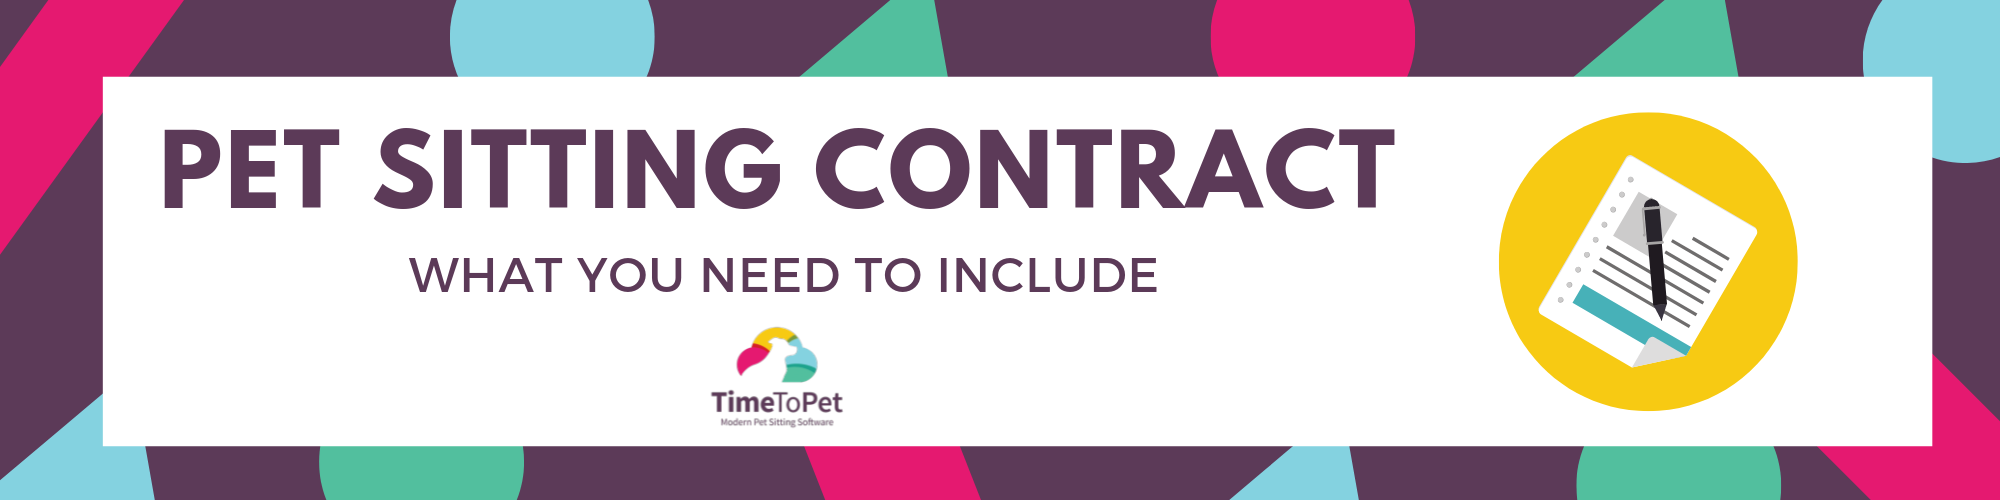 Pet Sitting Contract Graphic